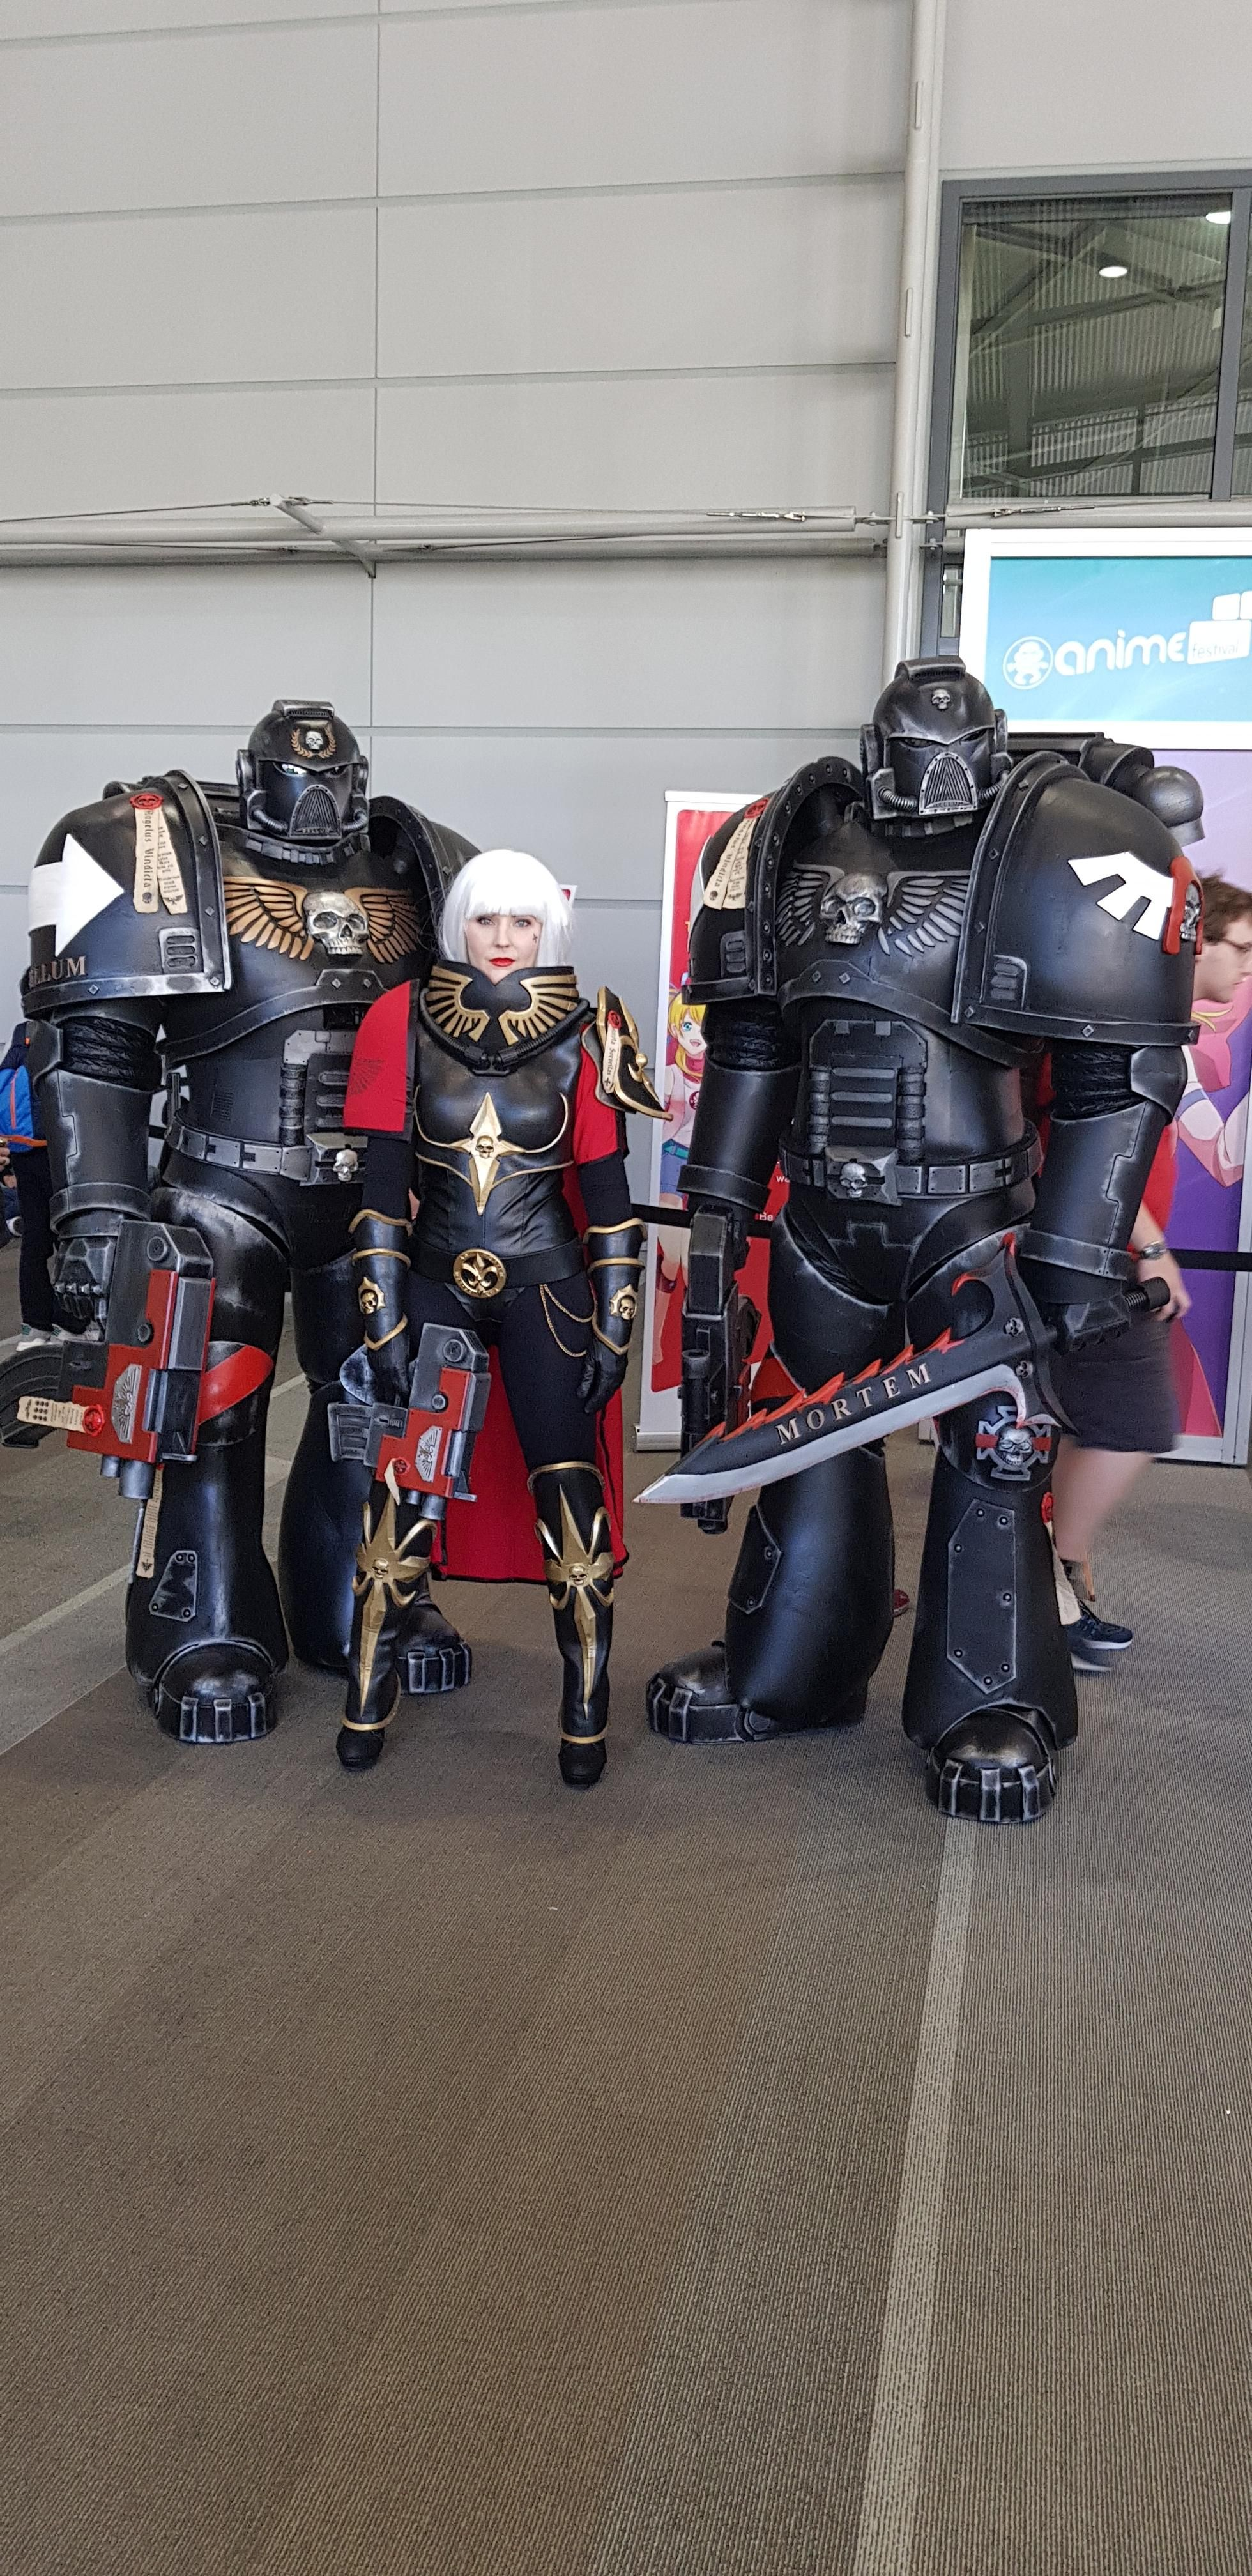 Local anime expo had these awesome guys cosplaying so I